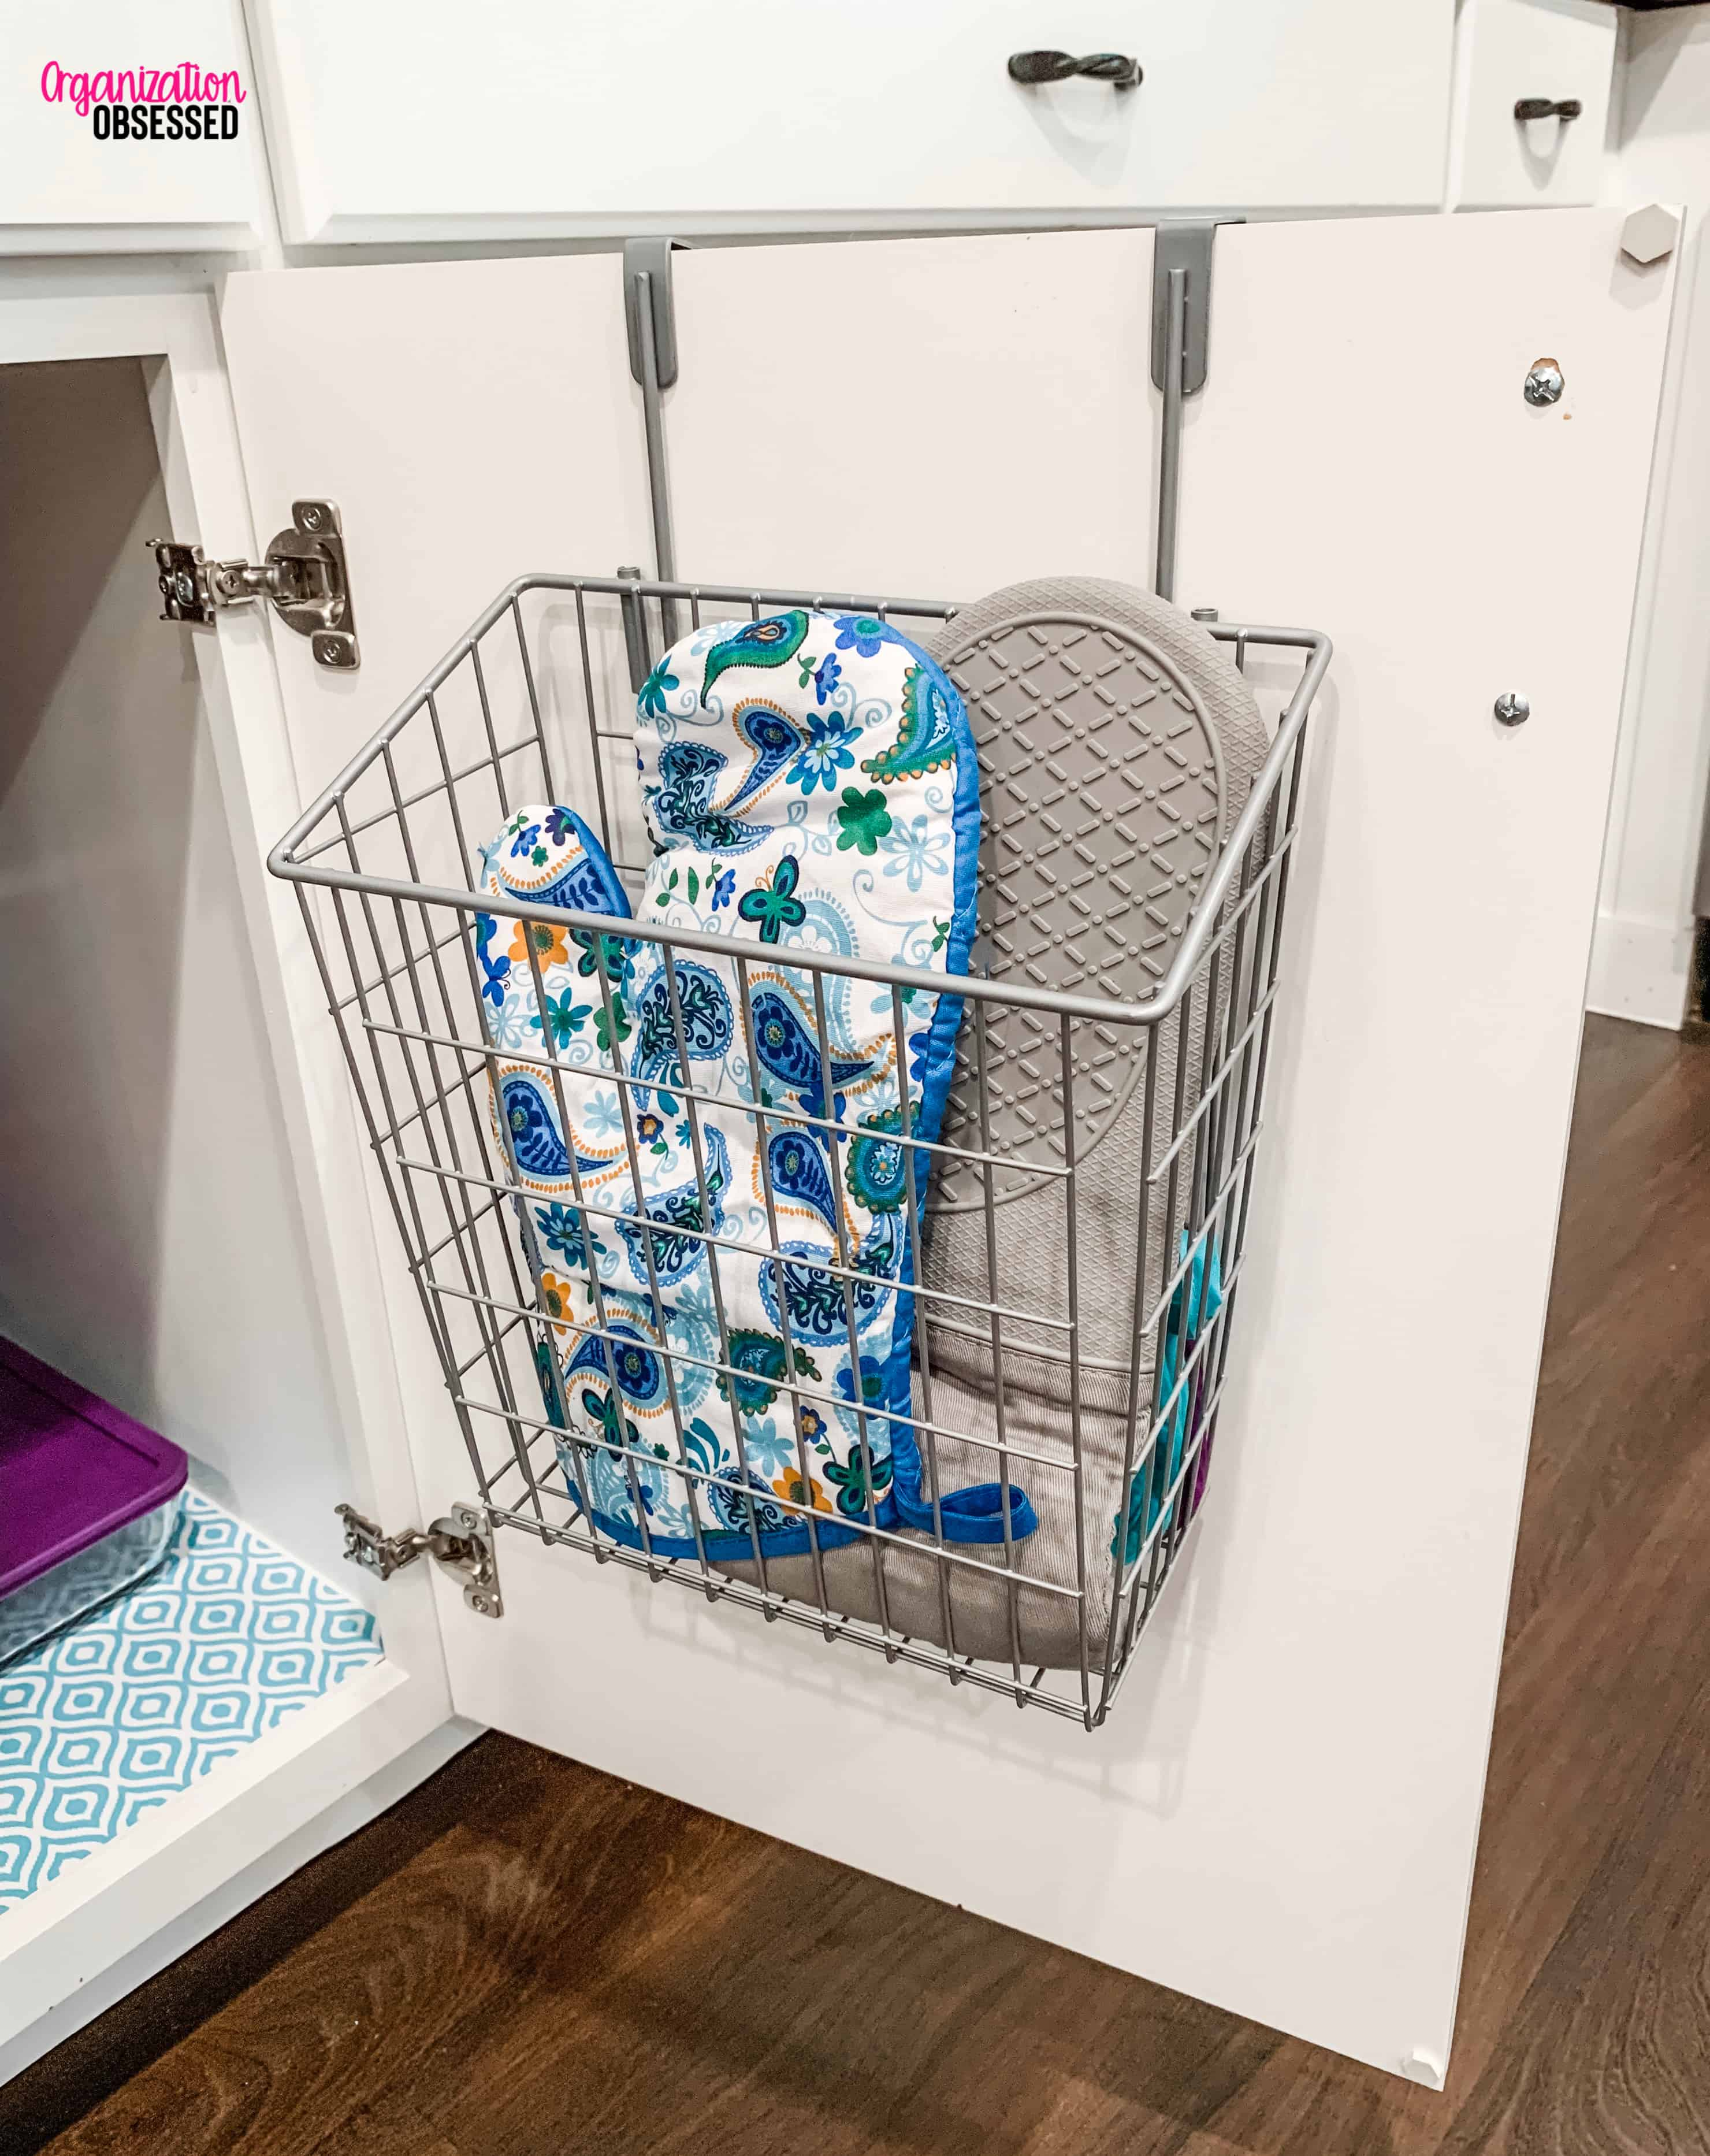 Organizing Small Spaces - Oven Mitts